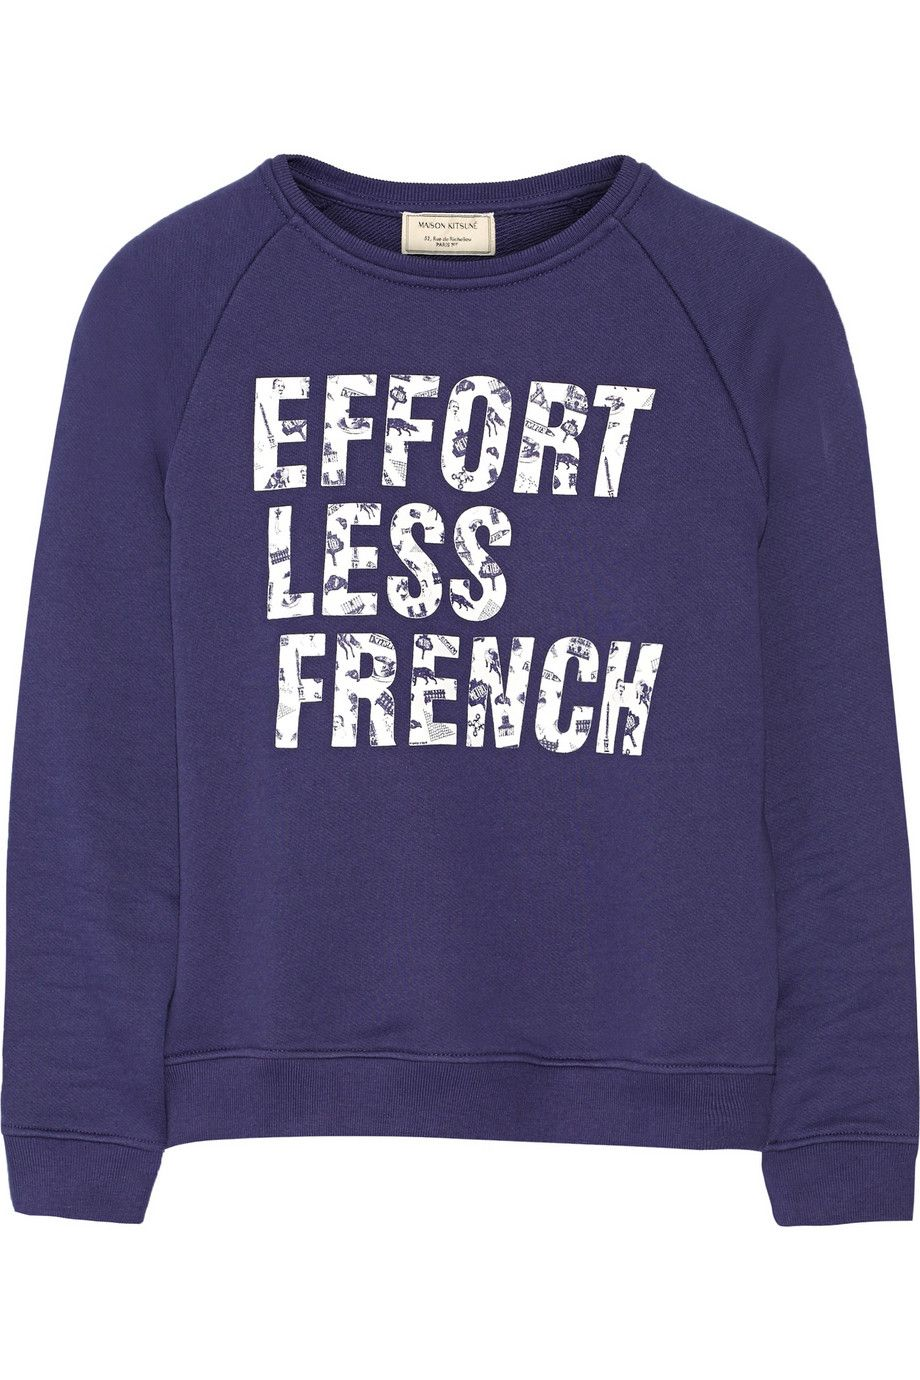 Maison kitsuné effortless french printed cottonterry sweatshirt